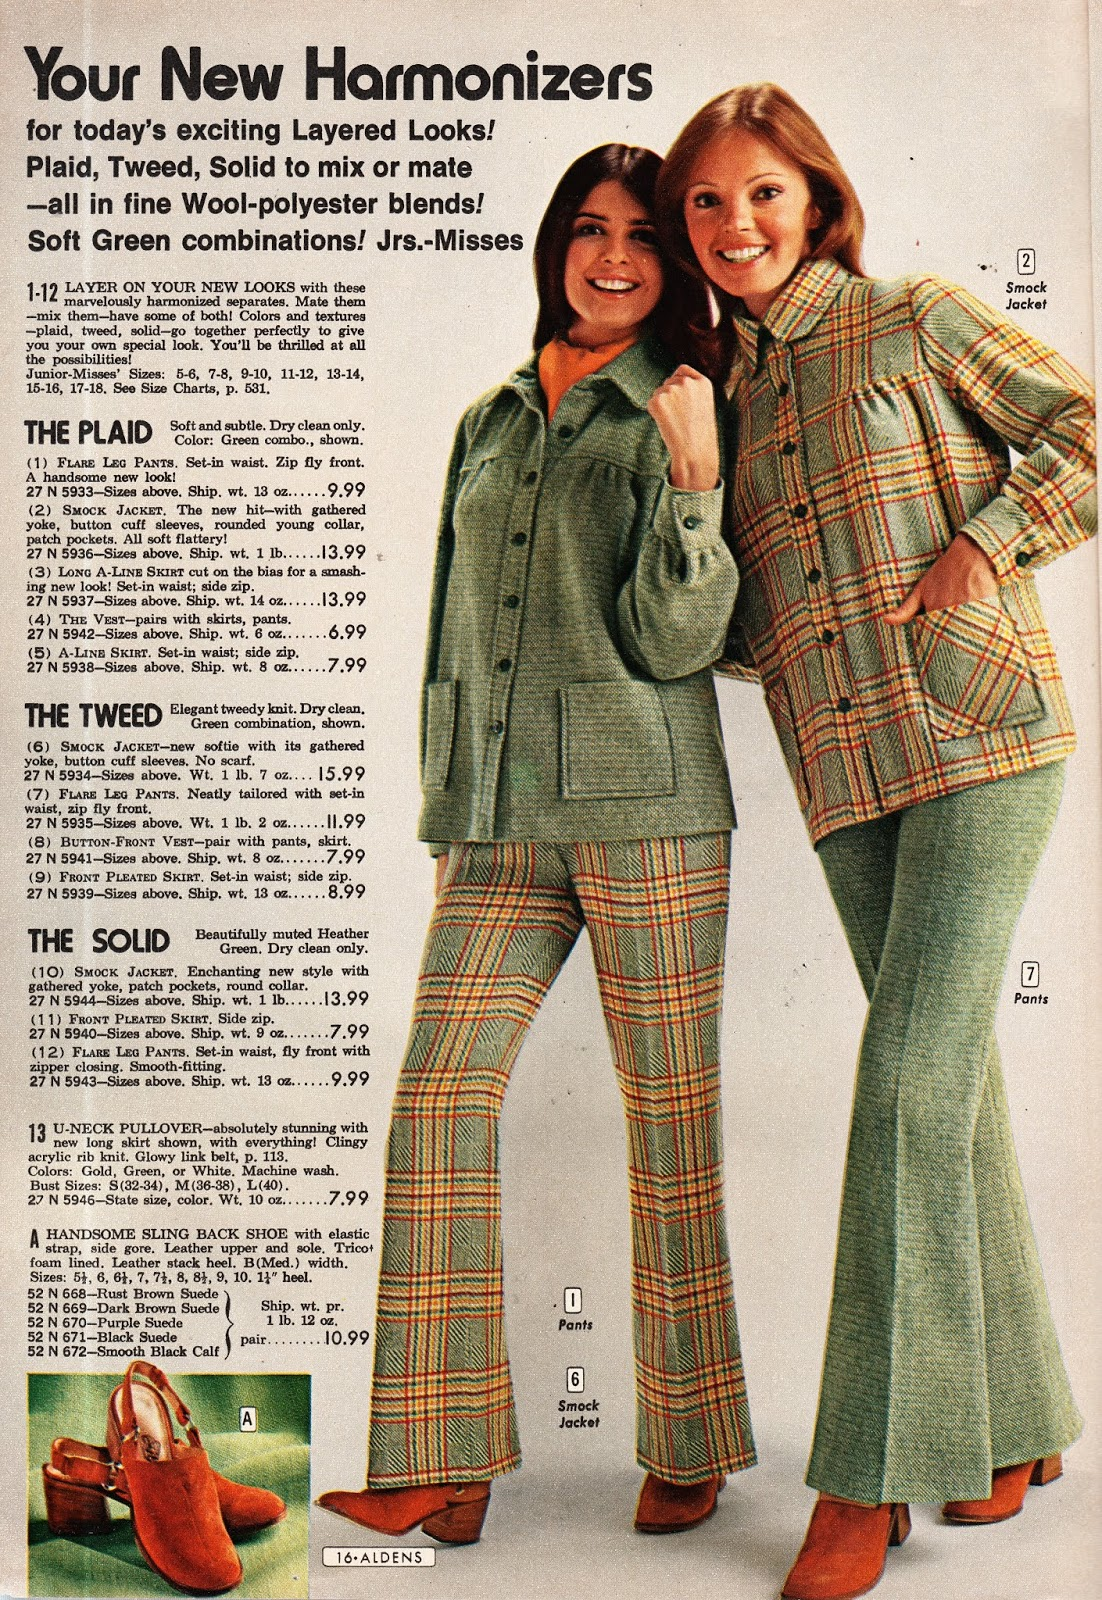 49b7cb5e The Plaid, The Tweed, The Solid!! Back in the 70s, it was all about mix and  match combinations!!